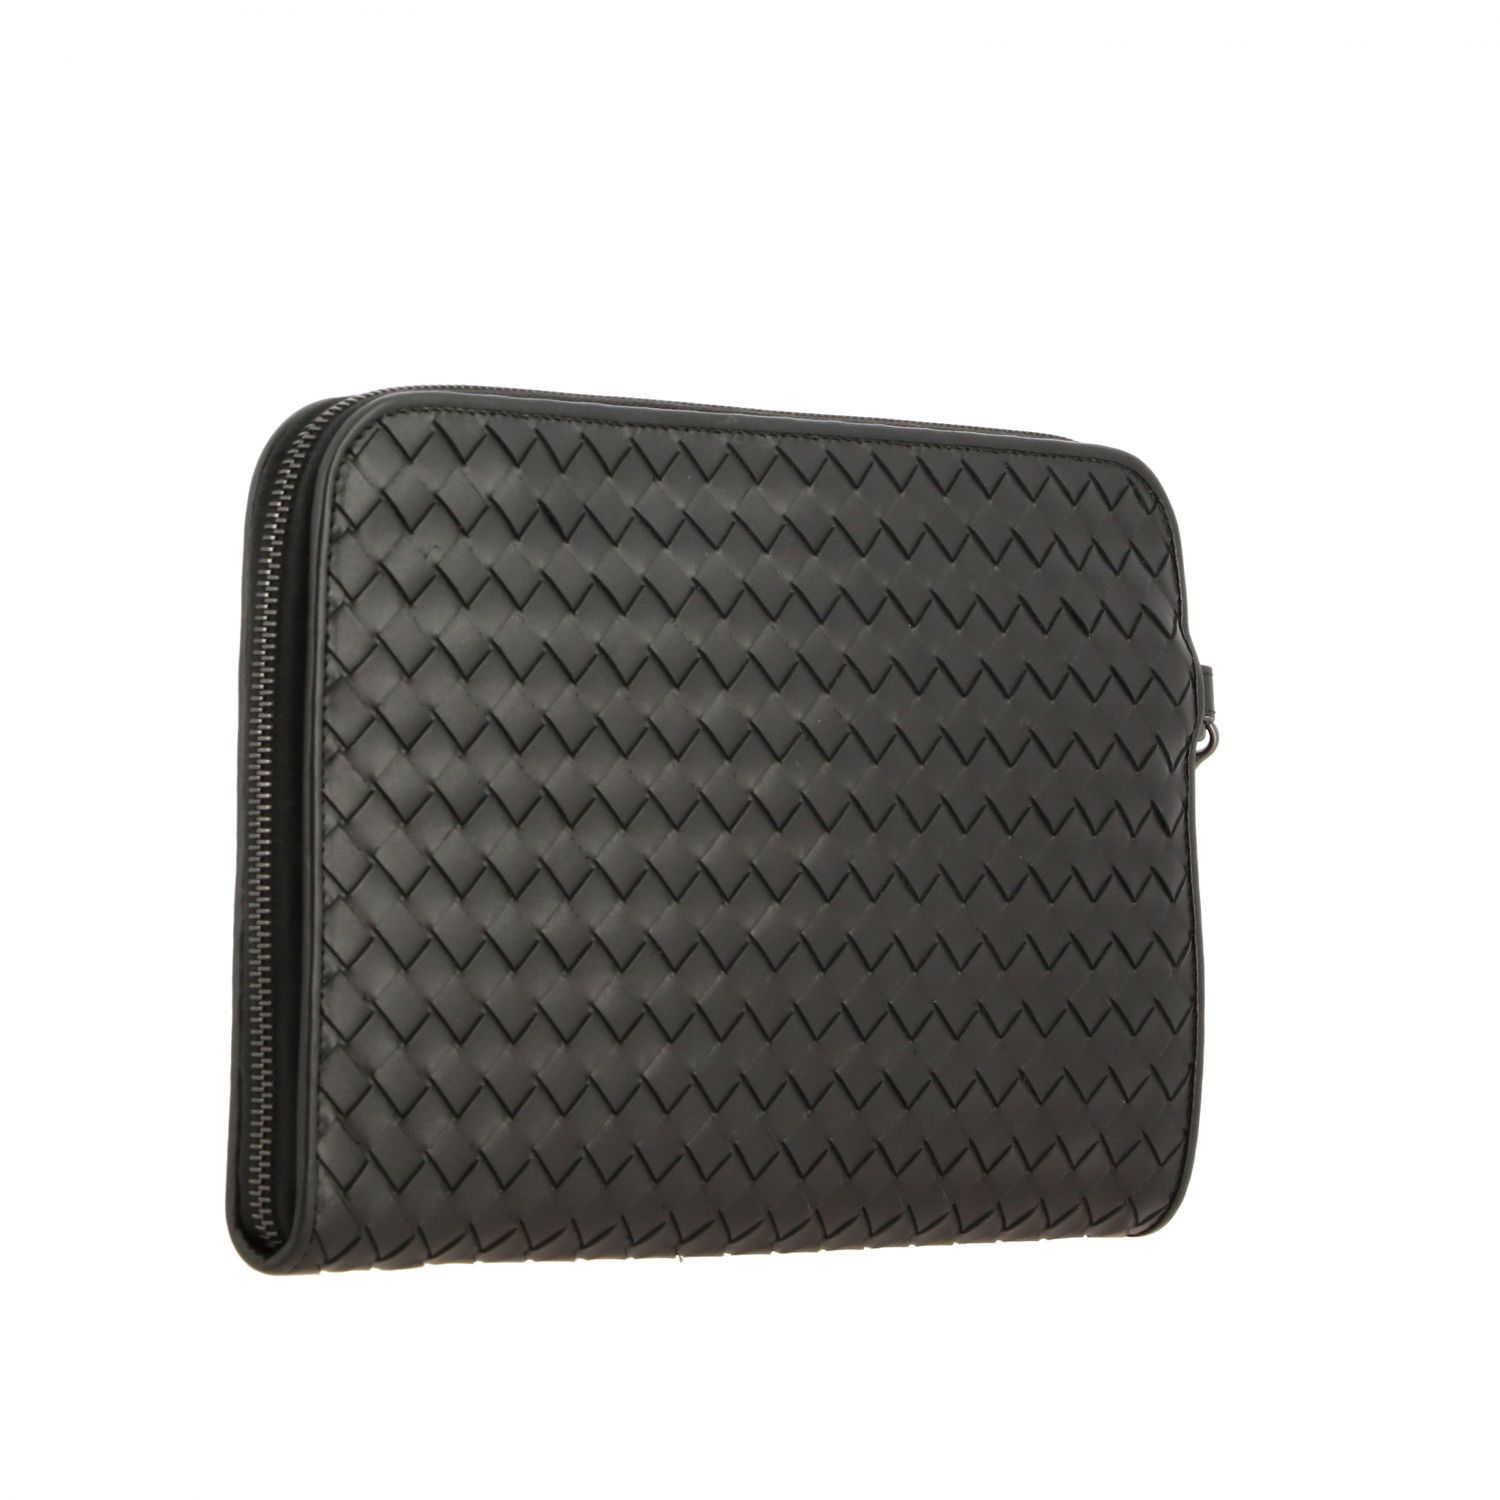 Clutch Bottega Veneta in pelle intrecciata nero 3